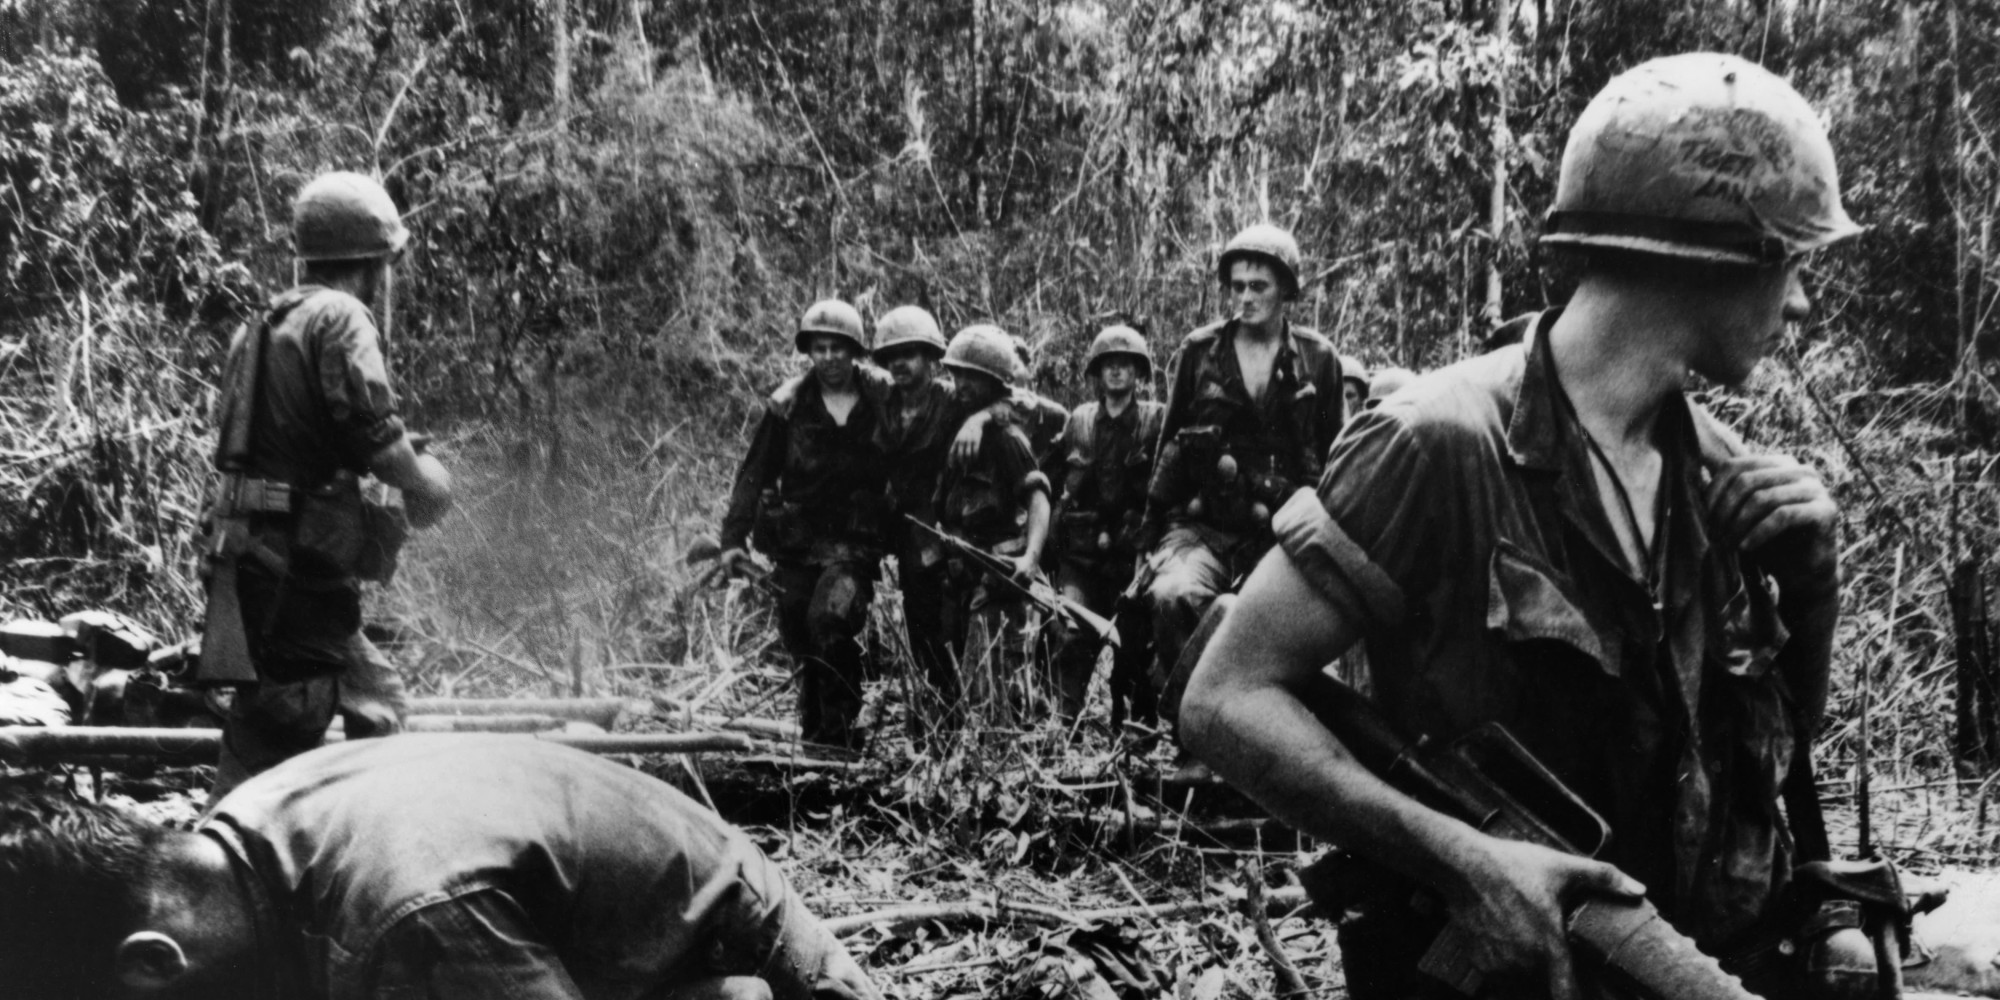 why did the u s enter the vietnam war The vietnam war was the longest and most unpopular foreign war in us history and cost 58,000 american lives as many as two million vietnamese soldiers and civilians were killed citation.